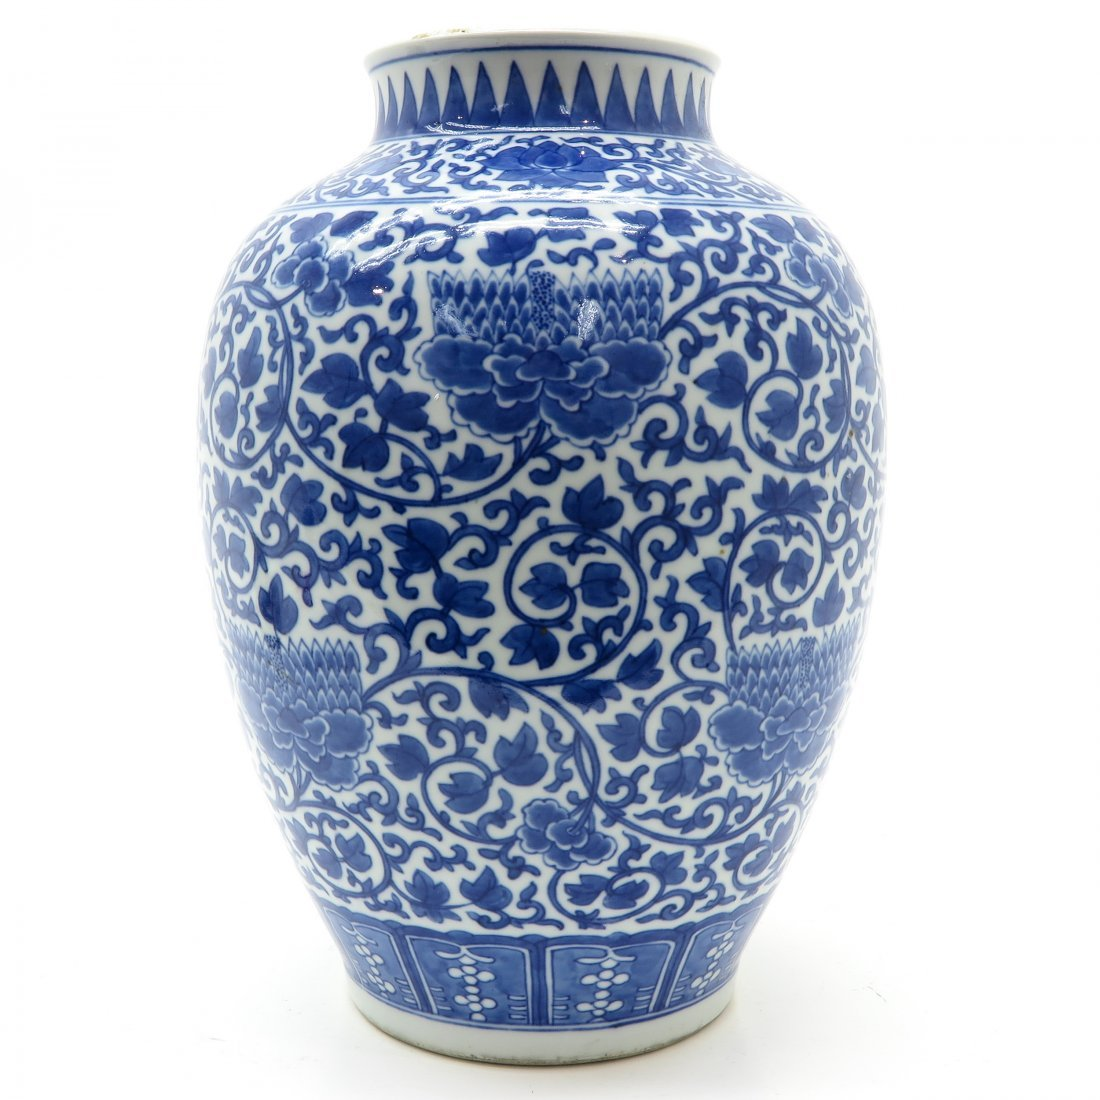 19th Century China Porcelain Vase